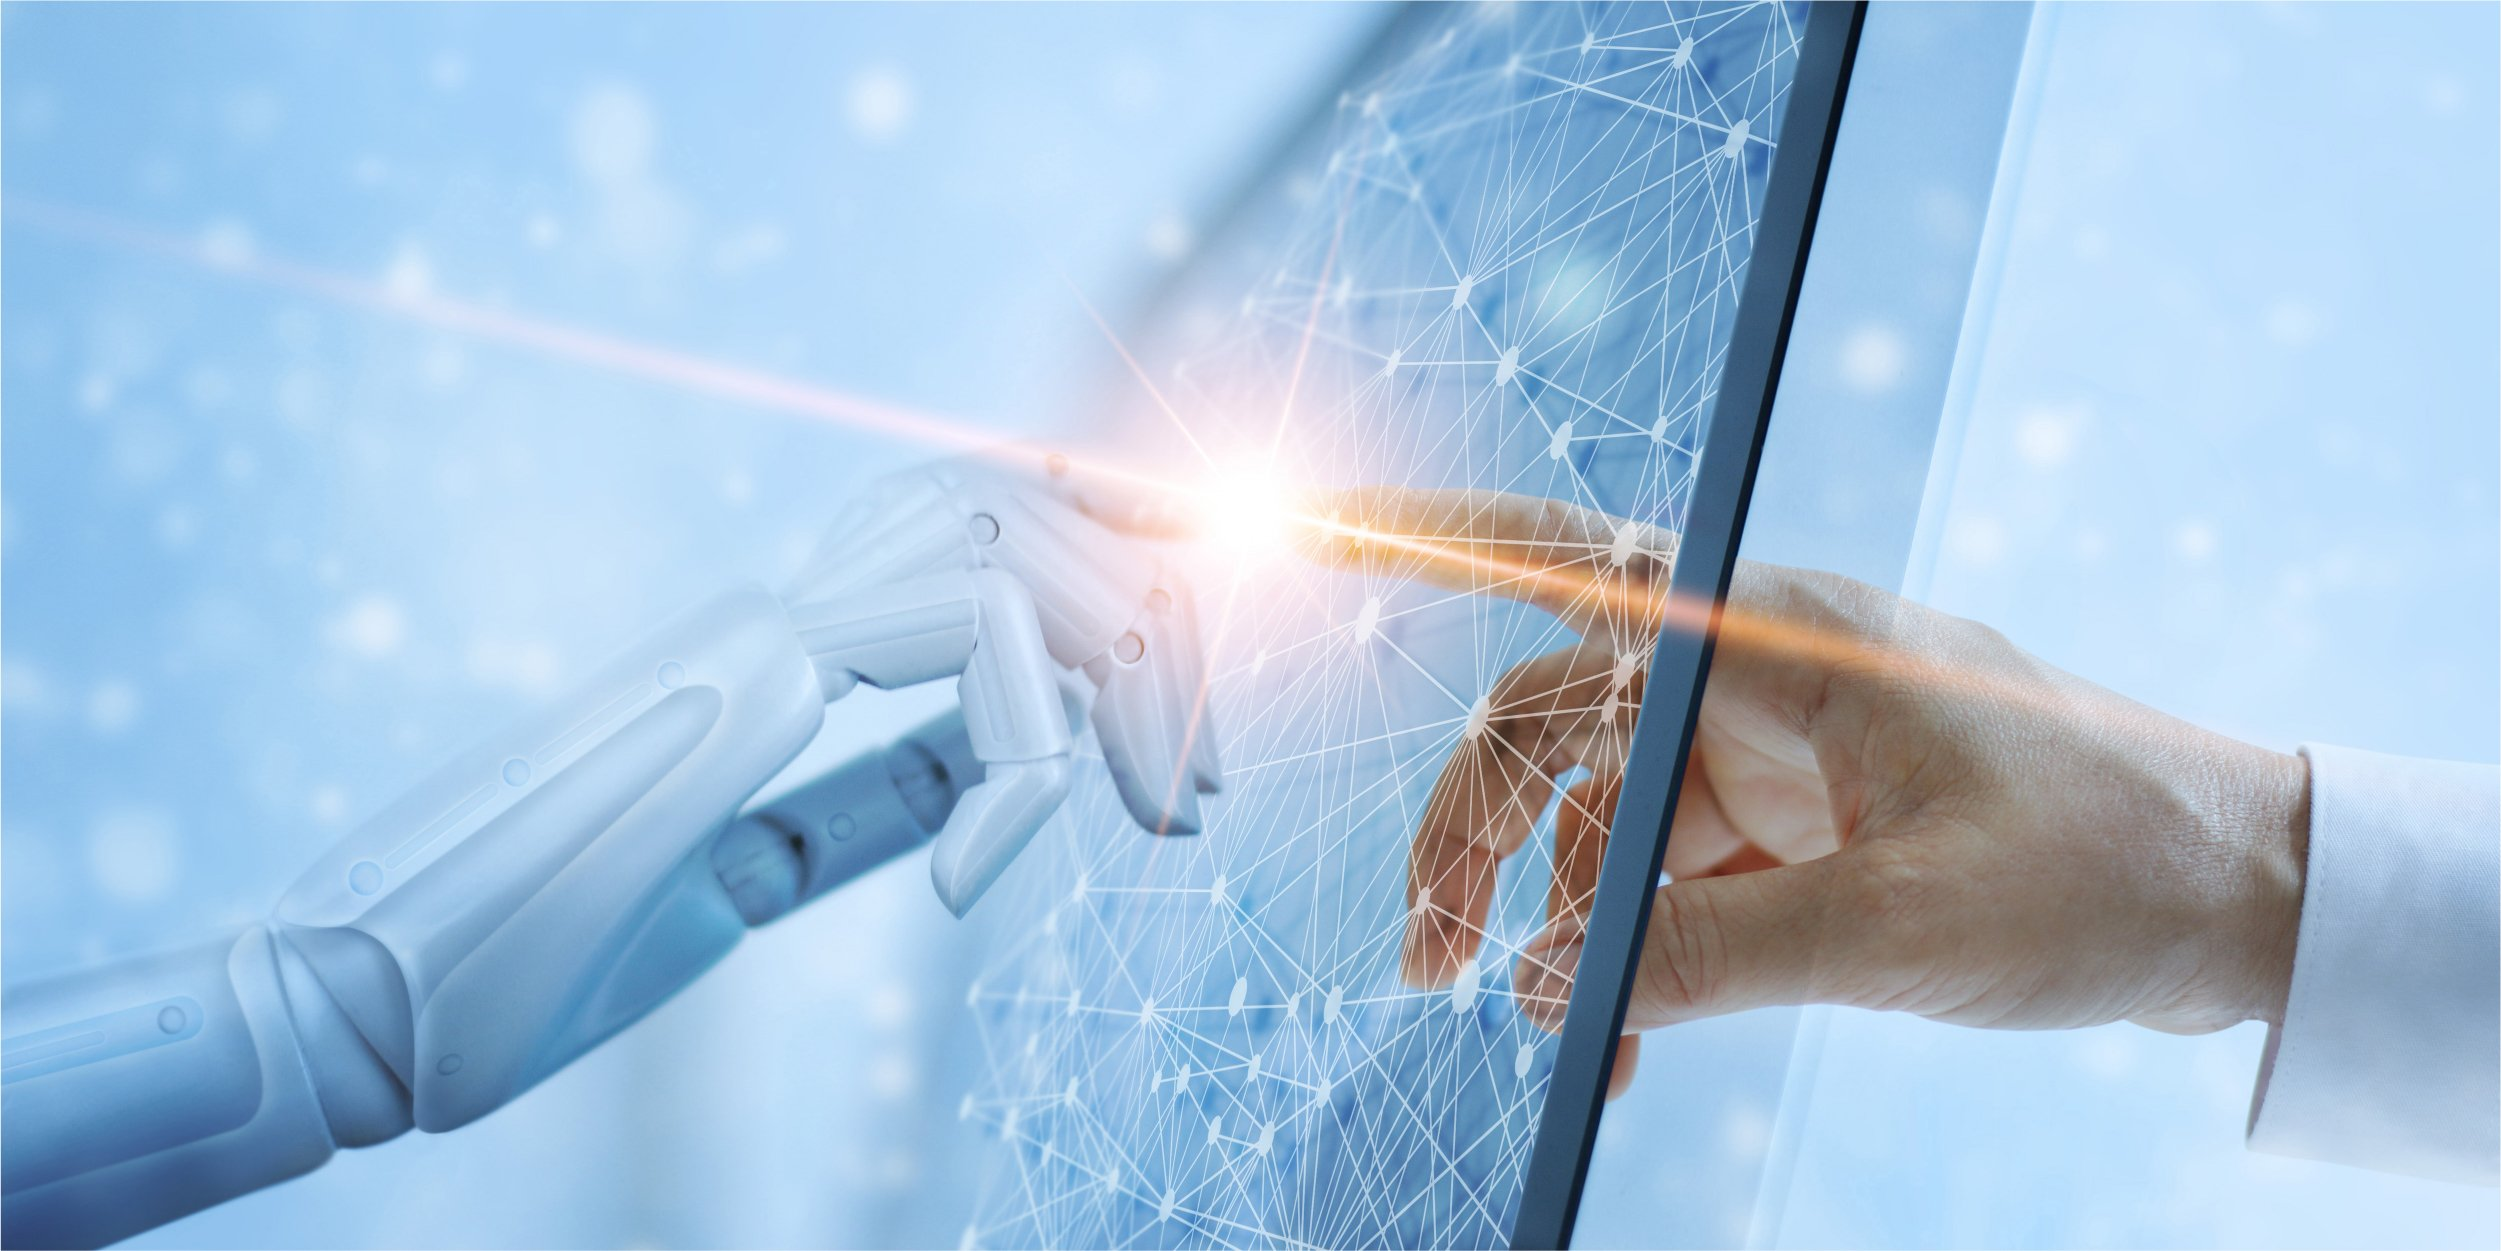 hands-robot-human-touching-global-virtual-network-connection-future-interface_Blog copy